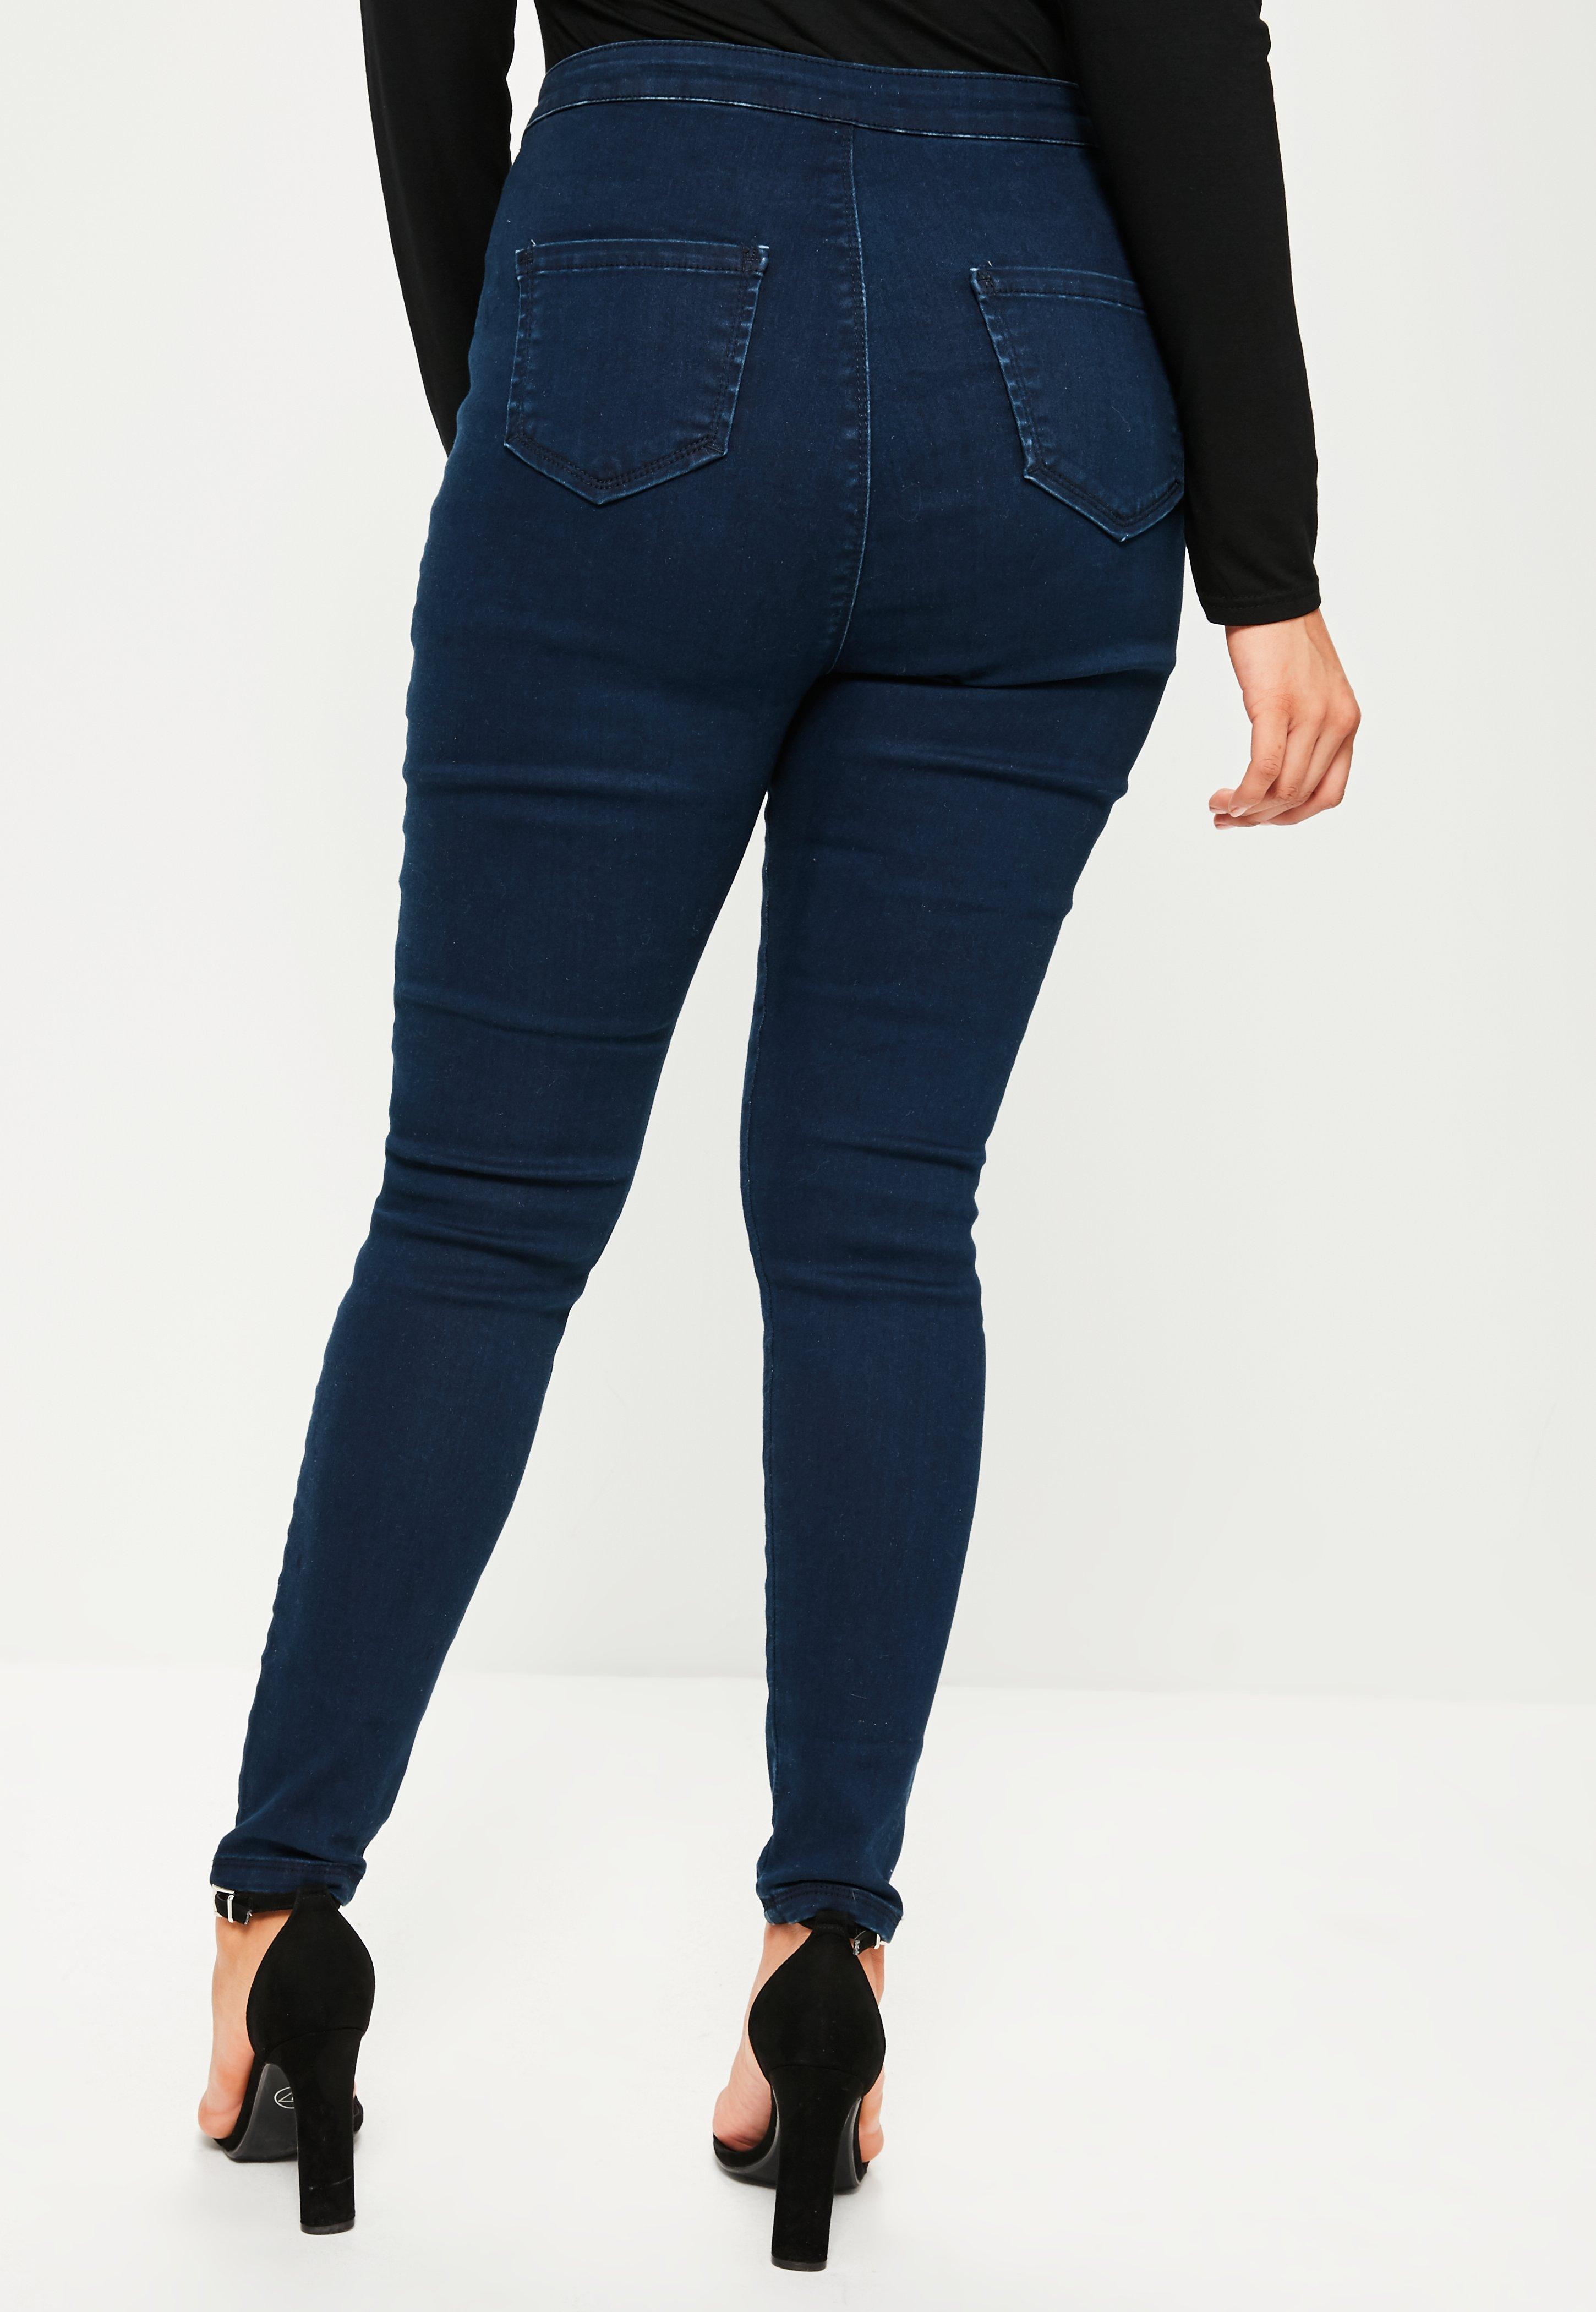 Plus Size Vice Navy High waisted Skinny Jeans